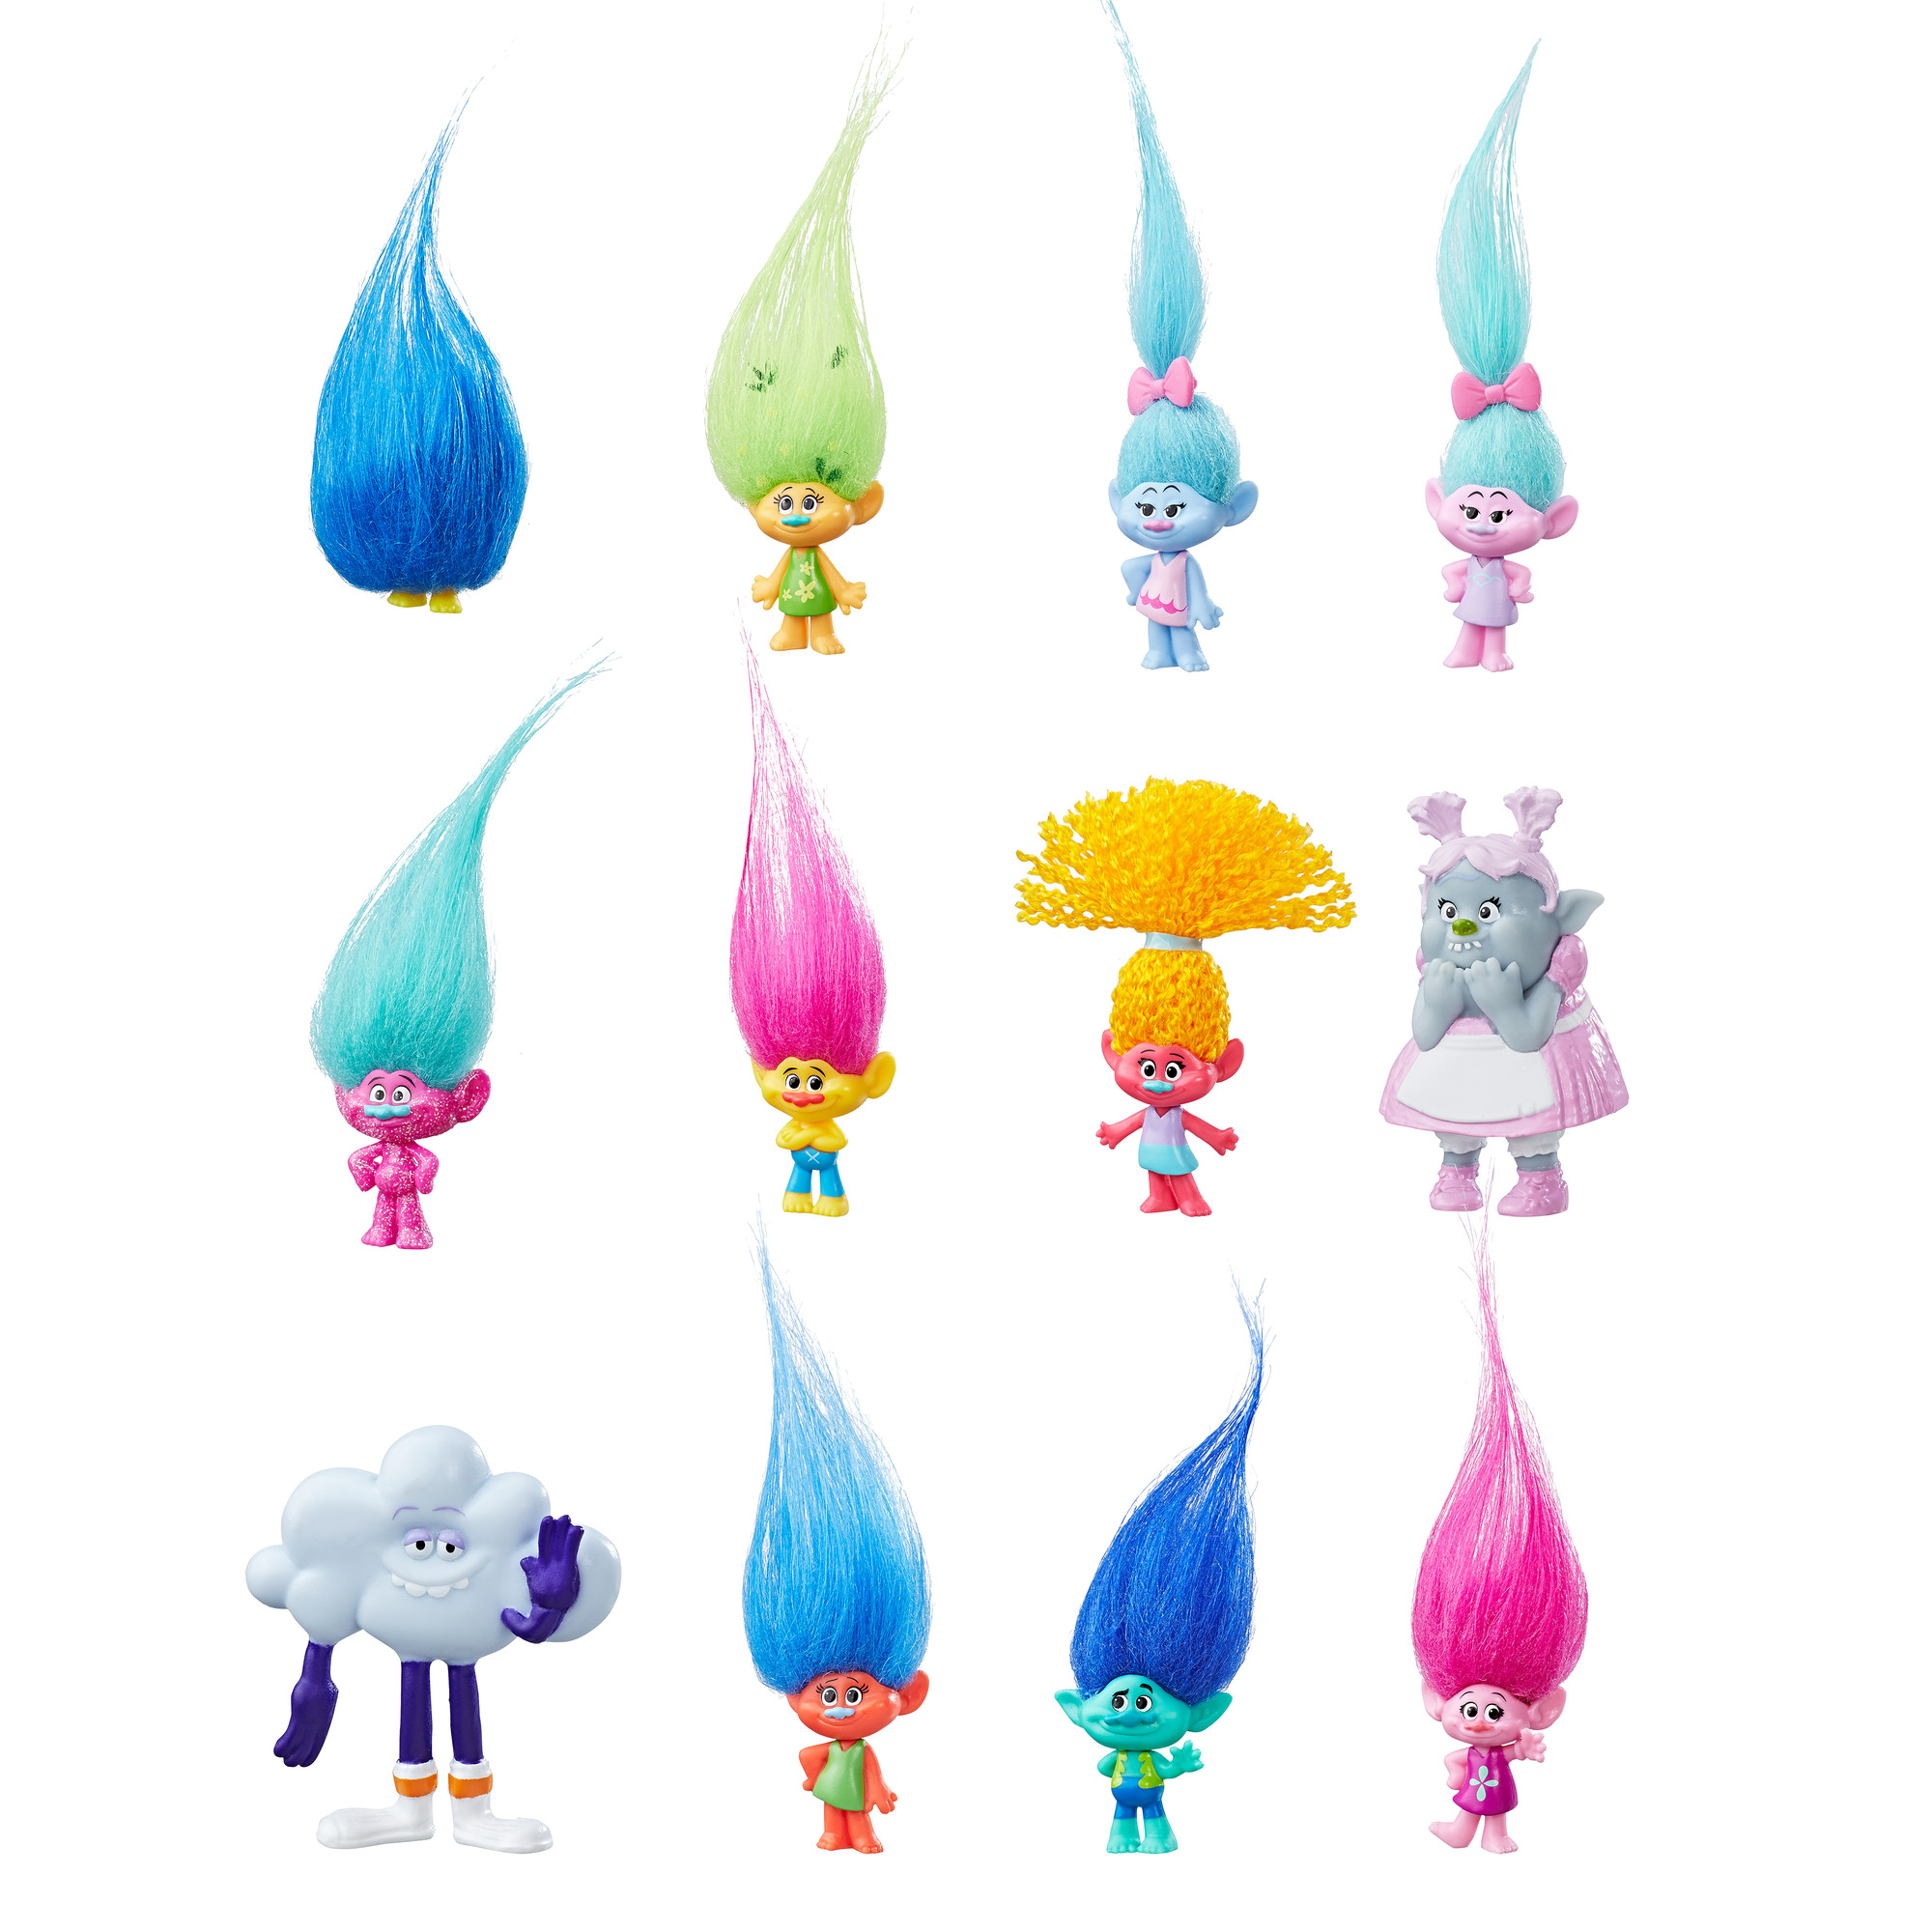 2000x2000 Dreamworks Trolls Surprise Mini Figure Series Hasbrotoyshop